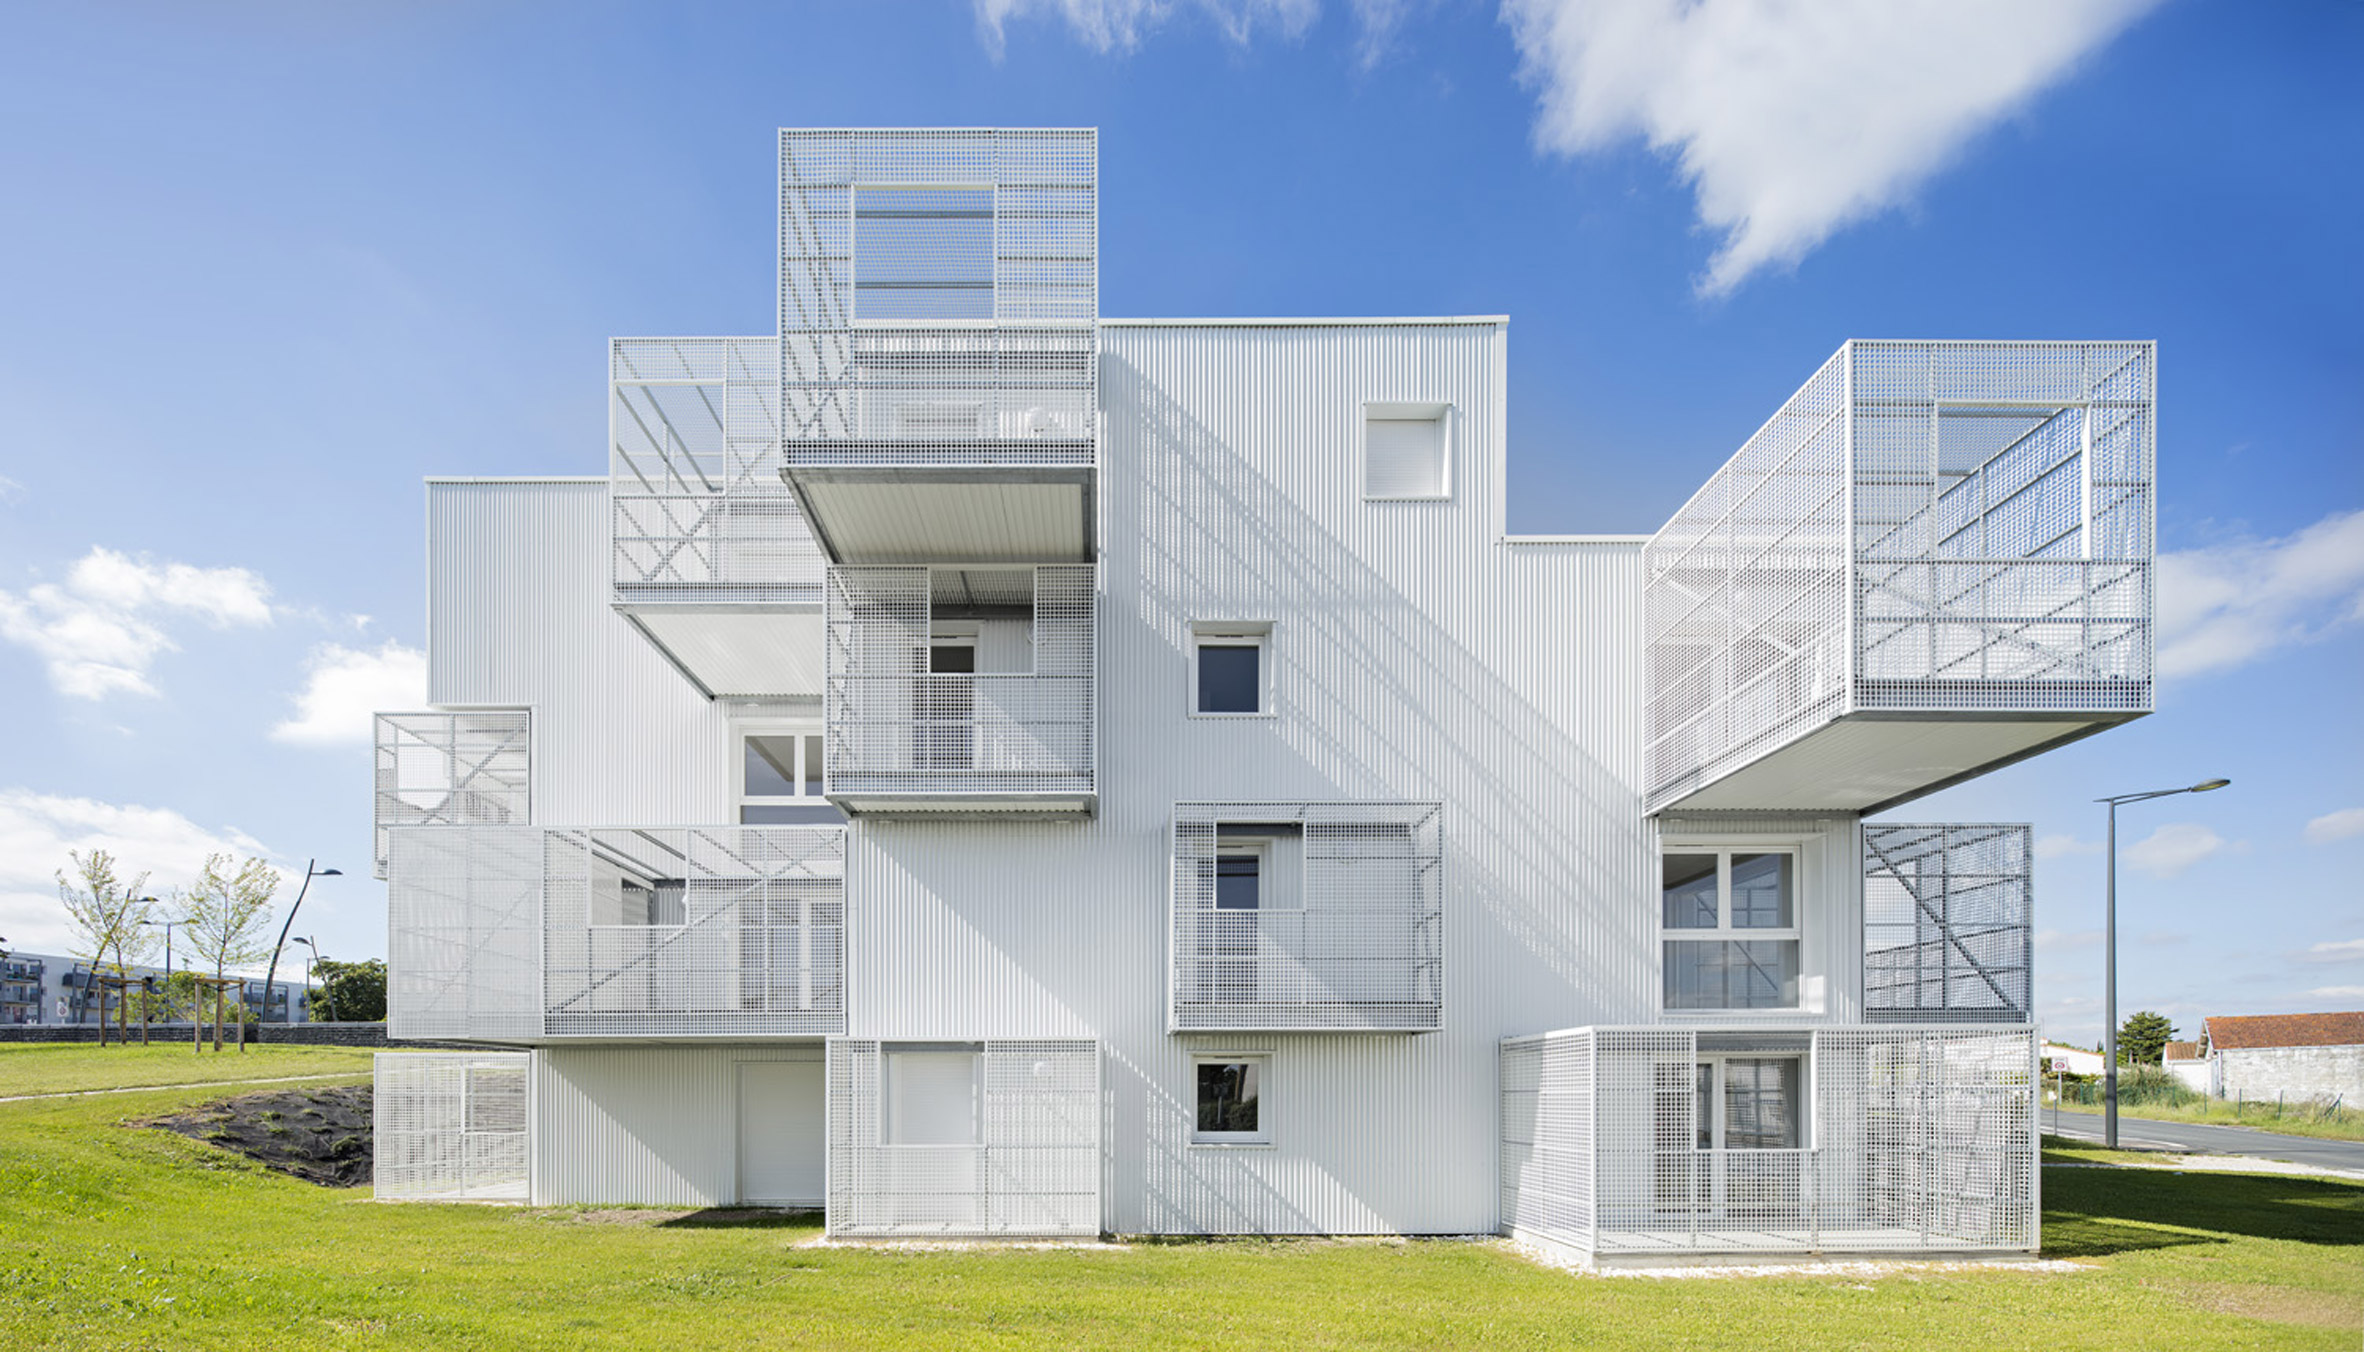 White irregularly stacked boxes form social housing in France by Poggi + More